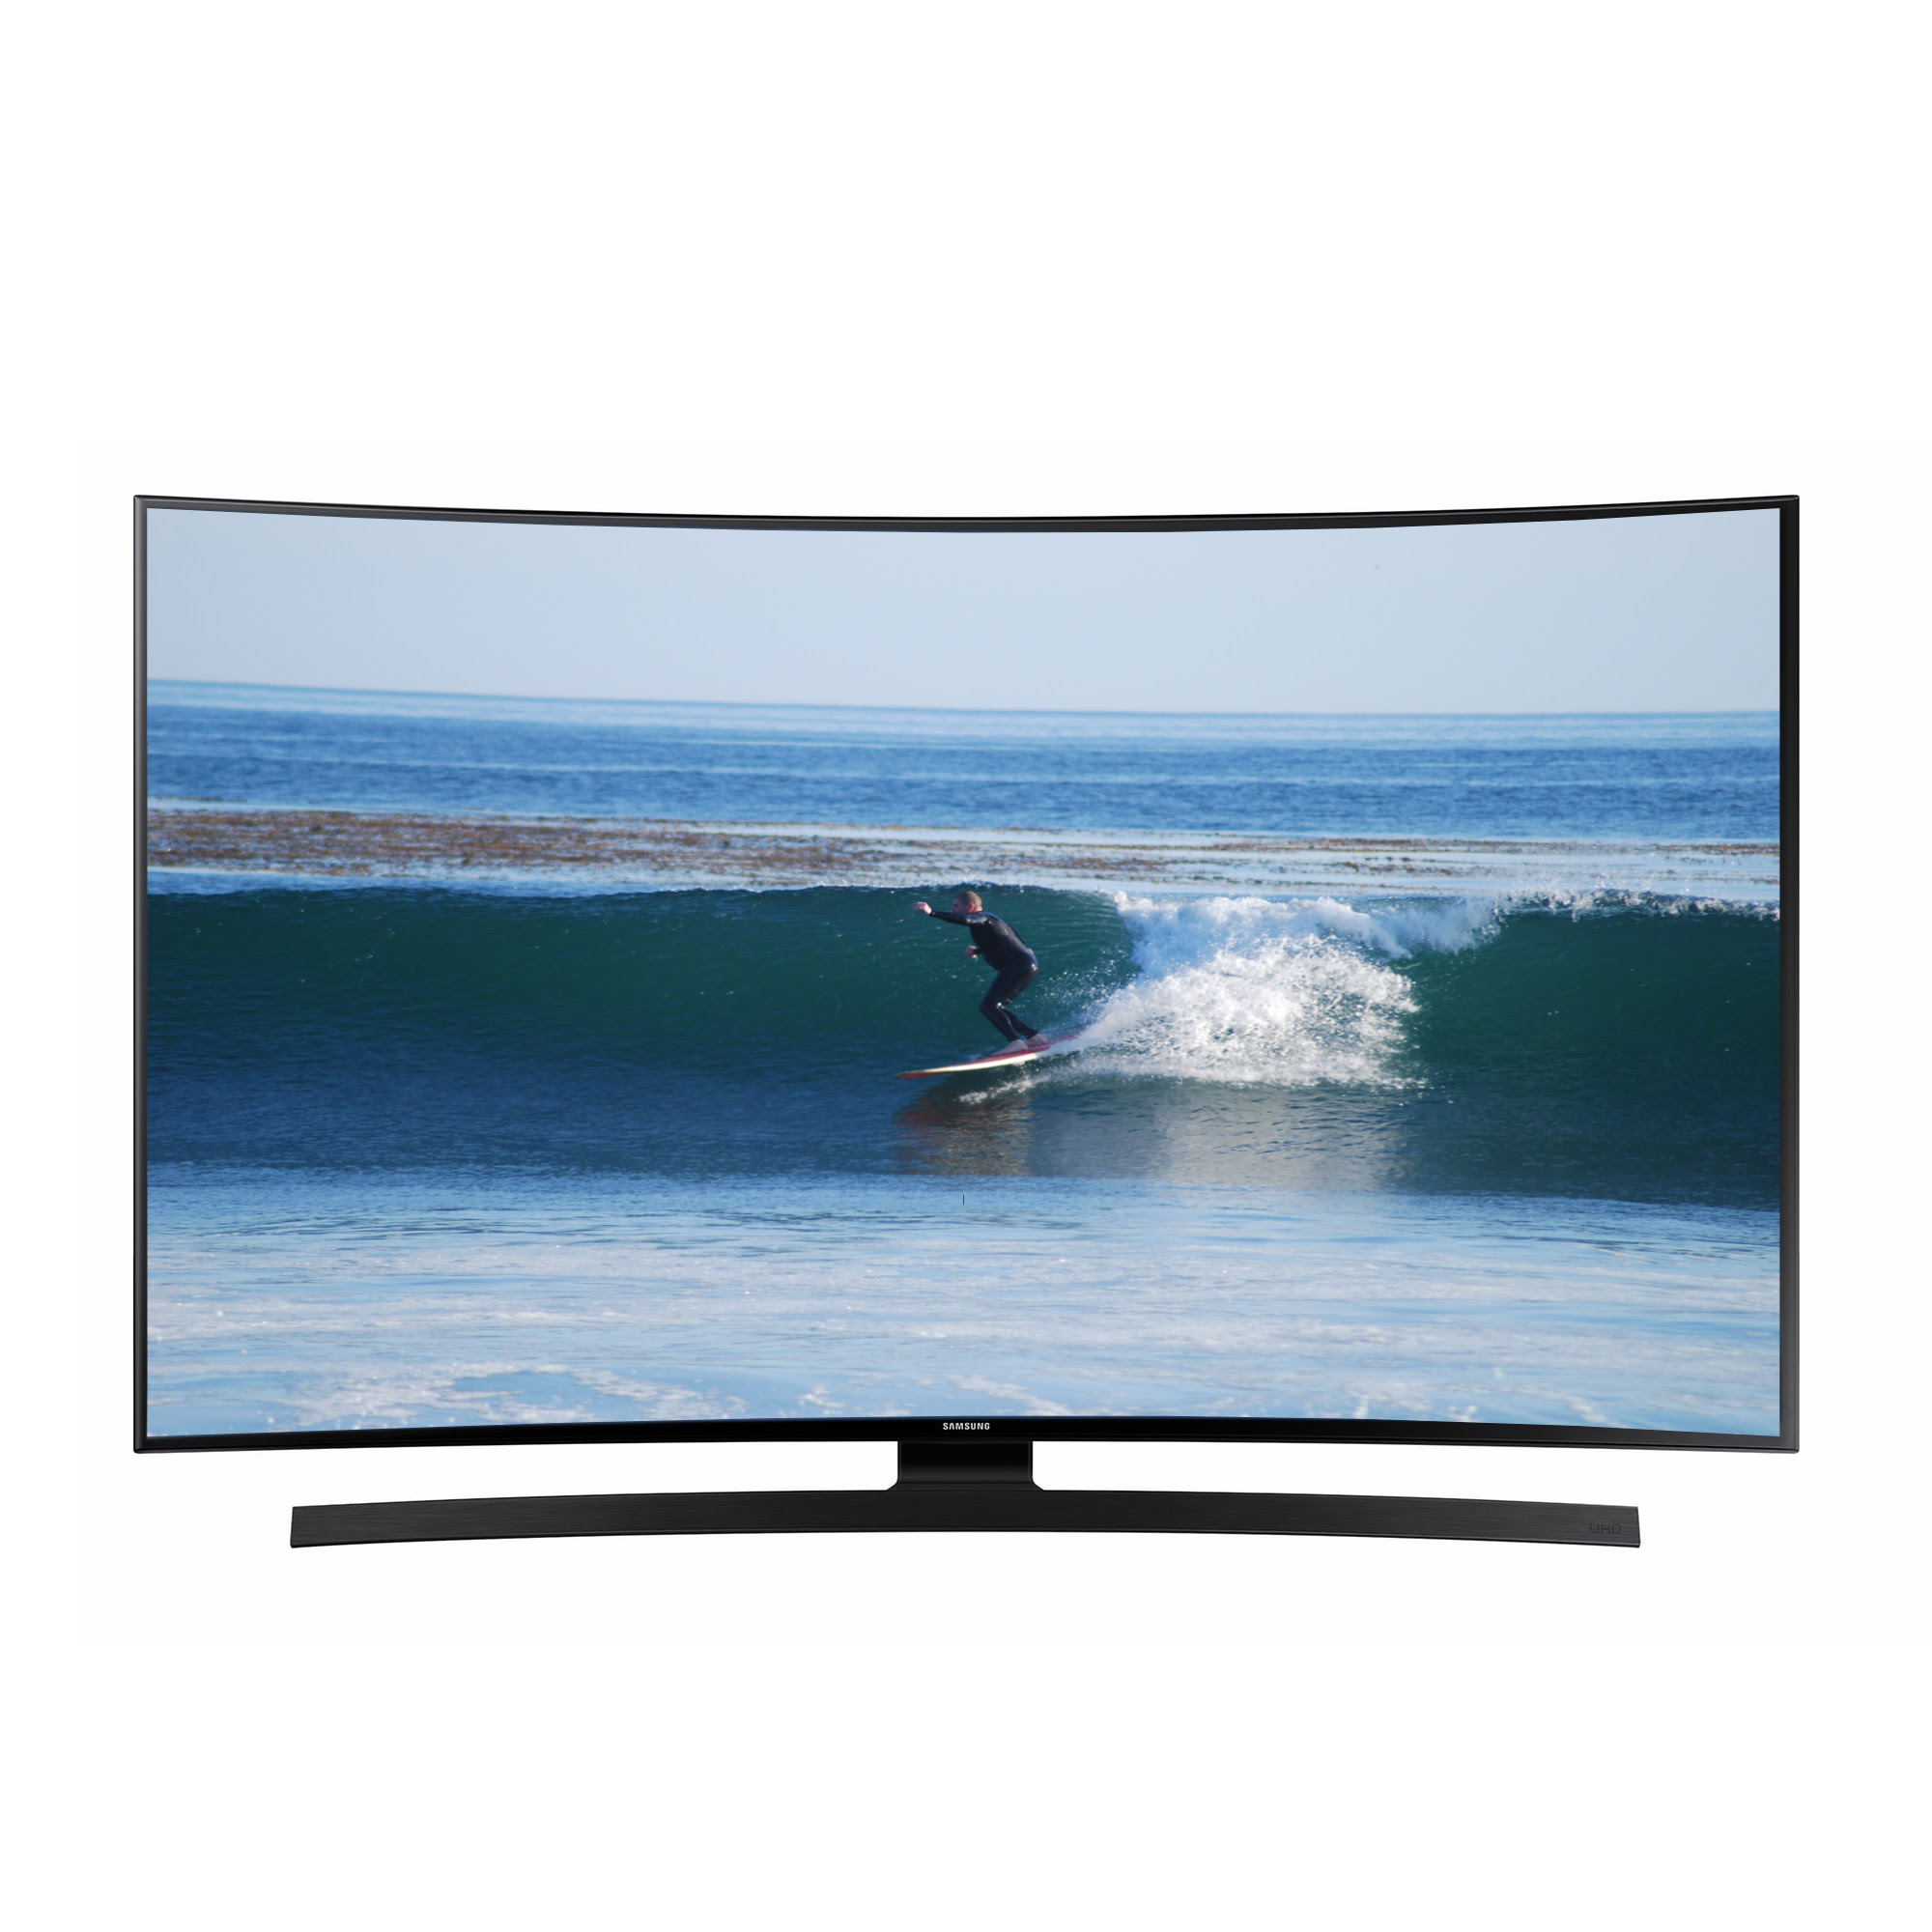 Samsung Refurbished 55 Class 4K Ultra HD Curved LED Smart Hdtv - UN55JU670DF